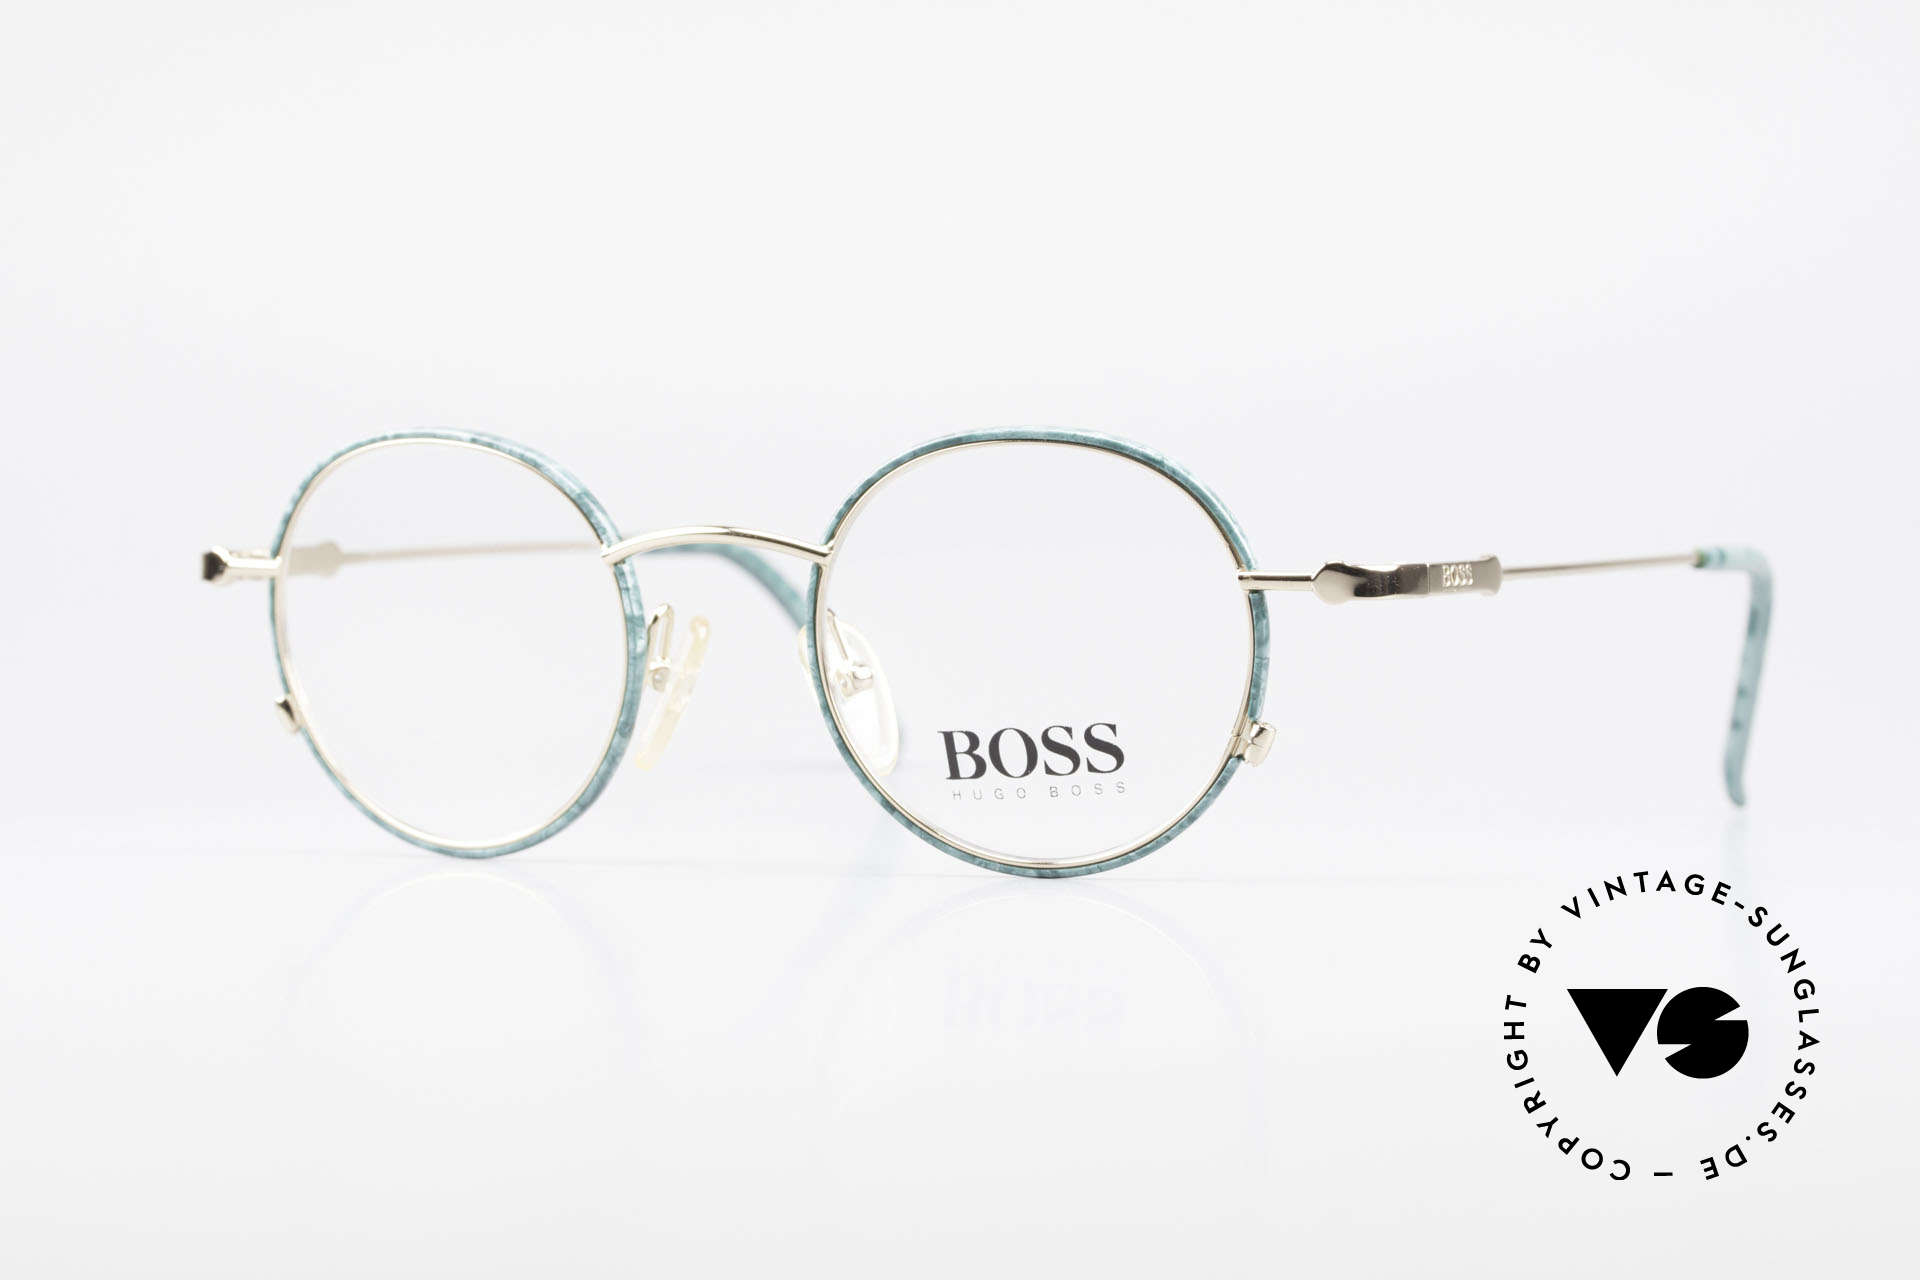 BOSS 5148 Round Panto Eyeglass Frame, round vintage 'panto design' eyeglasses by BOSS, Made for Men and Women